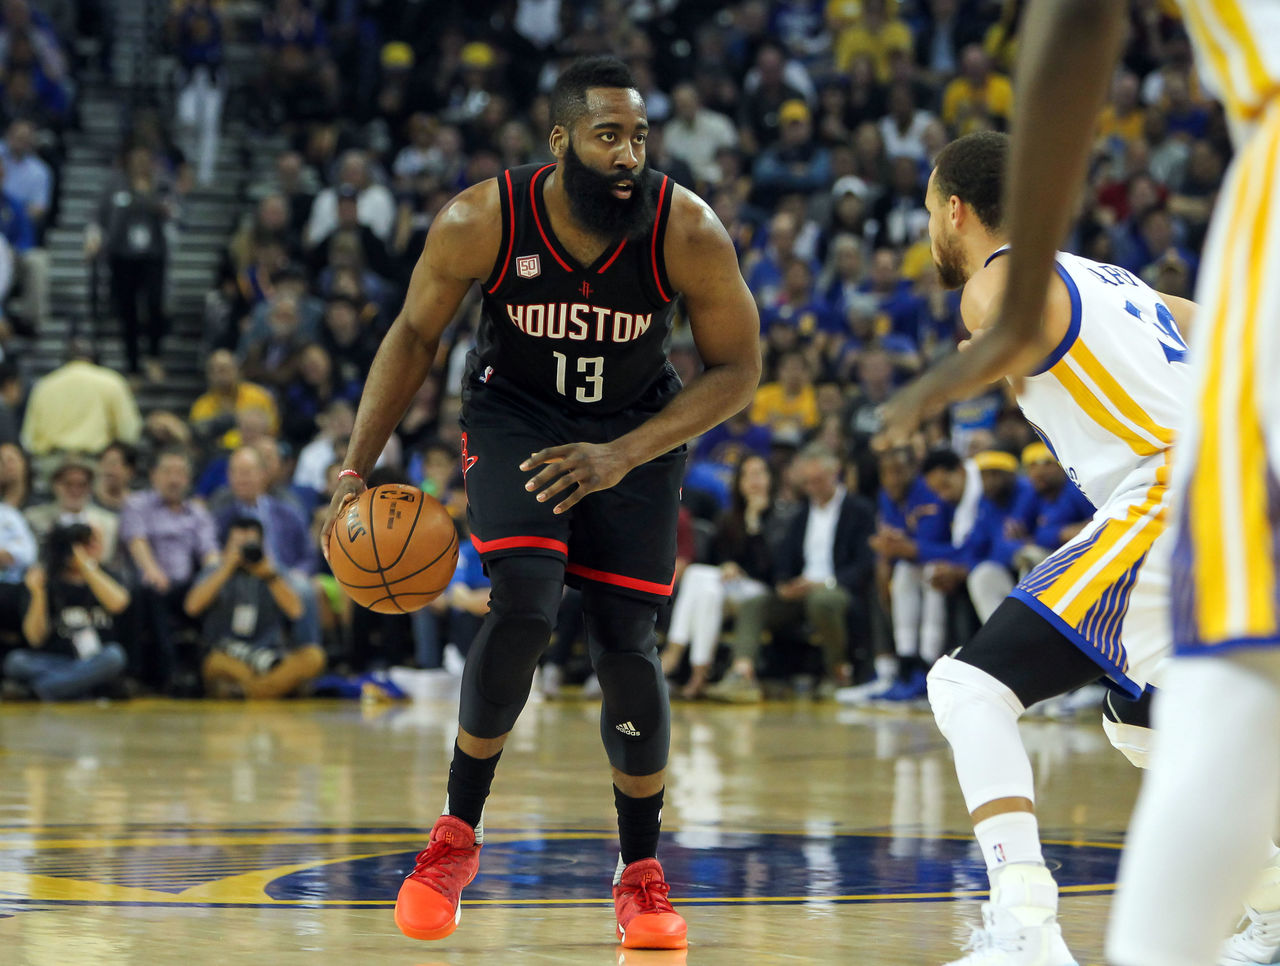 Cropped 2017 04 01t033618z 766585781 nocid rtrmadp 3 nba houston rockets at golden state warriors